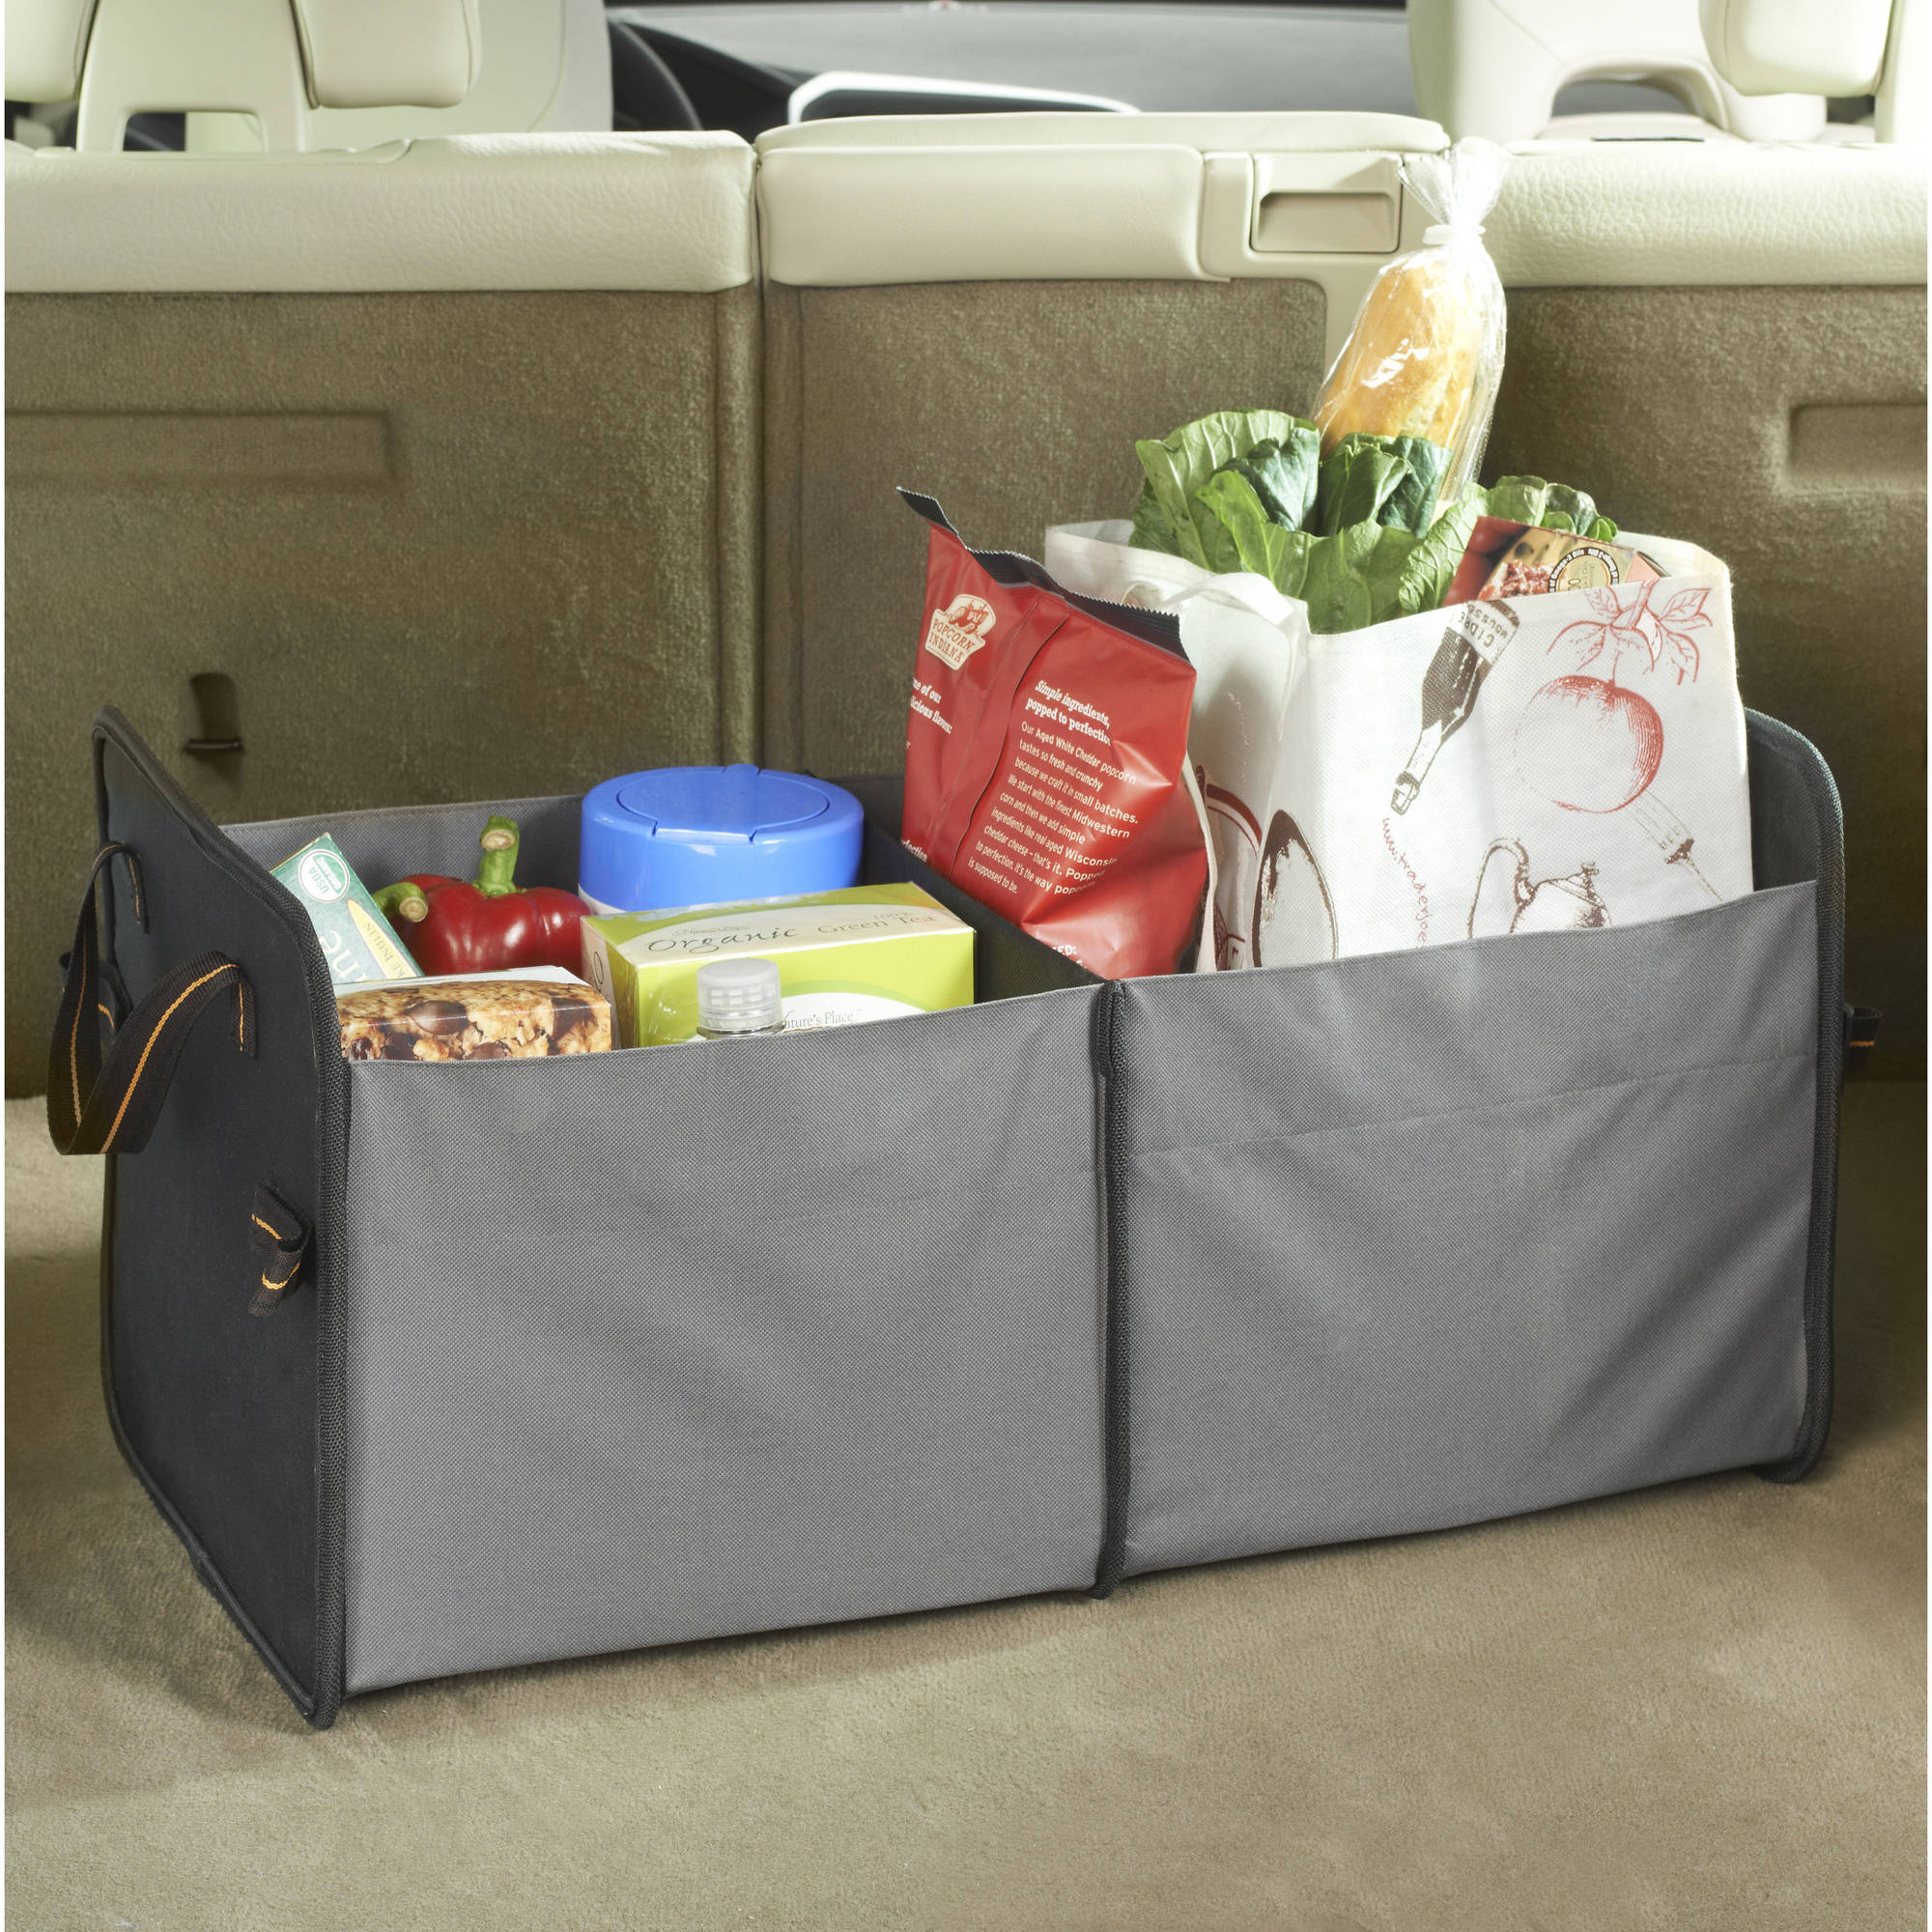 High Road Express Trunk and Cargo CarryAll Organizer